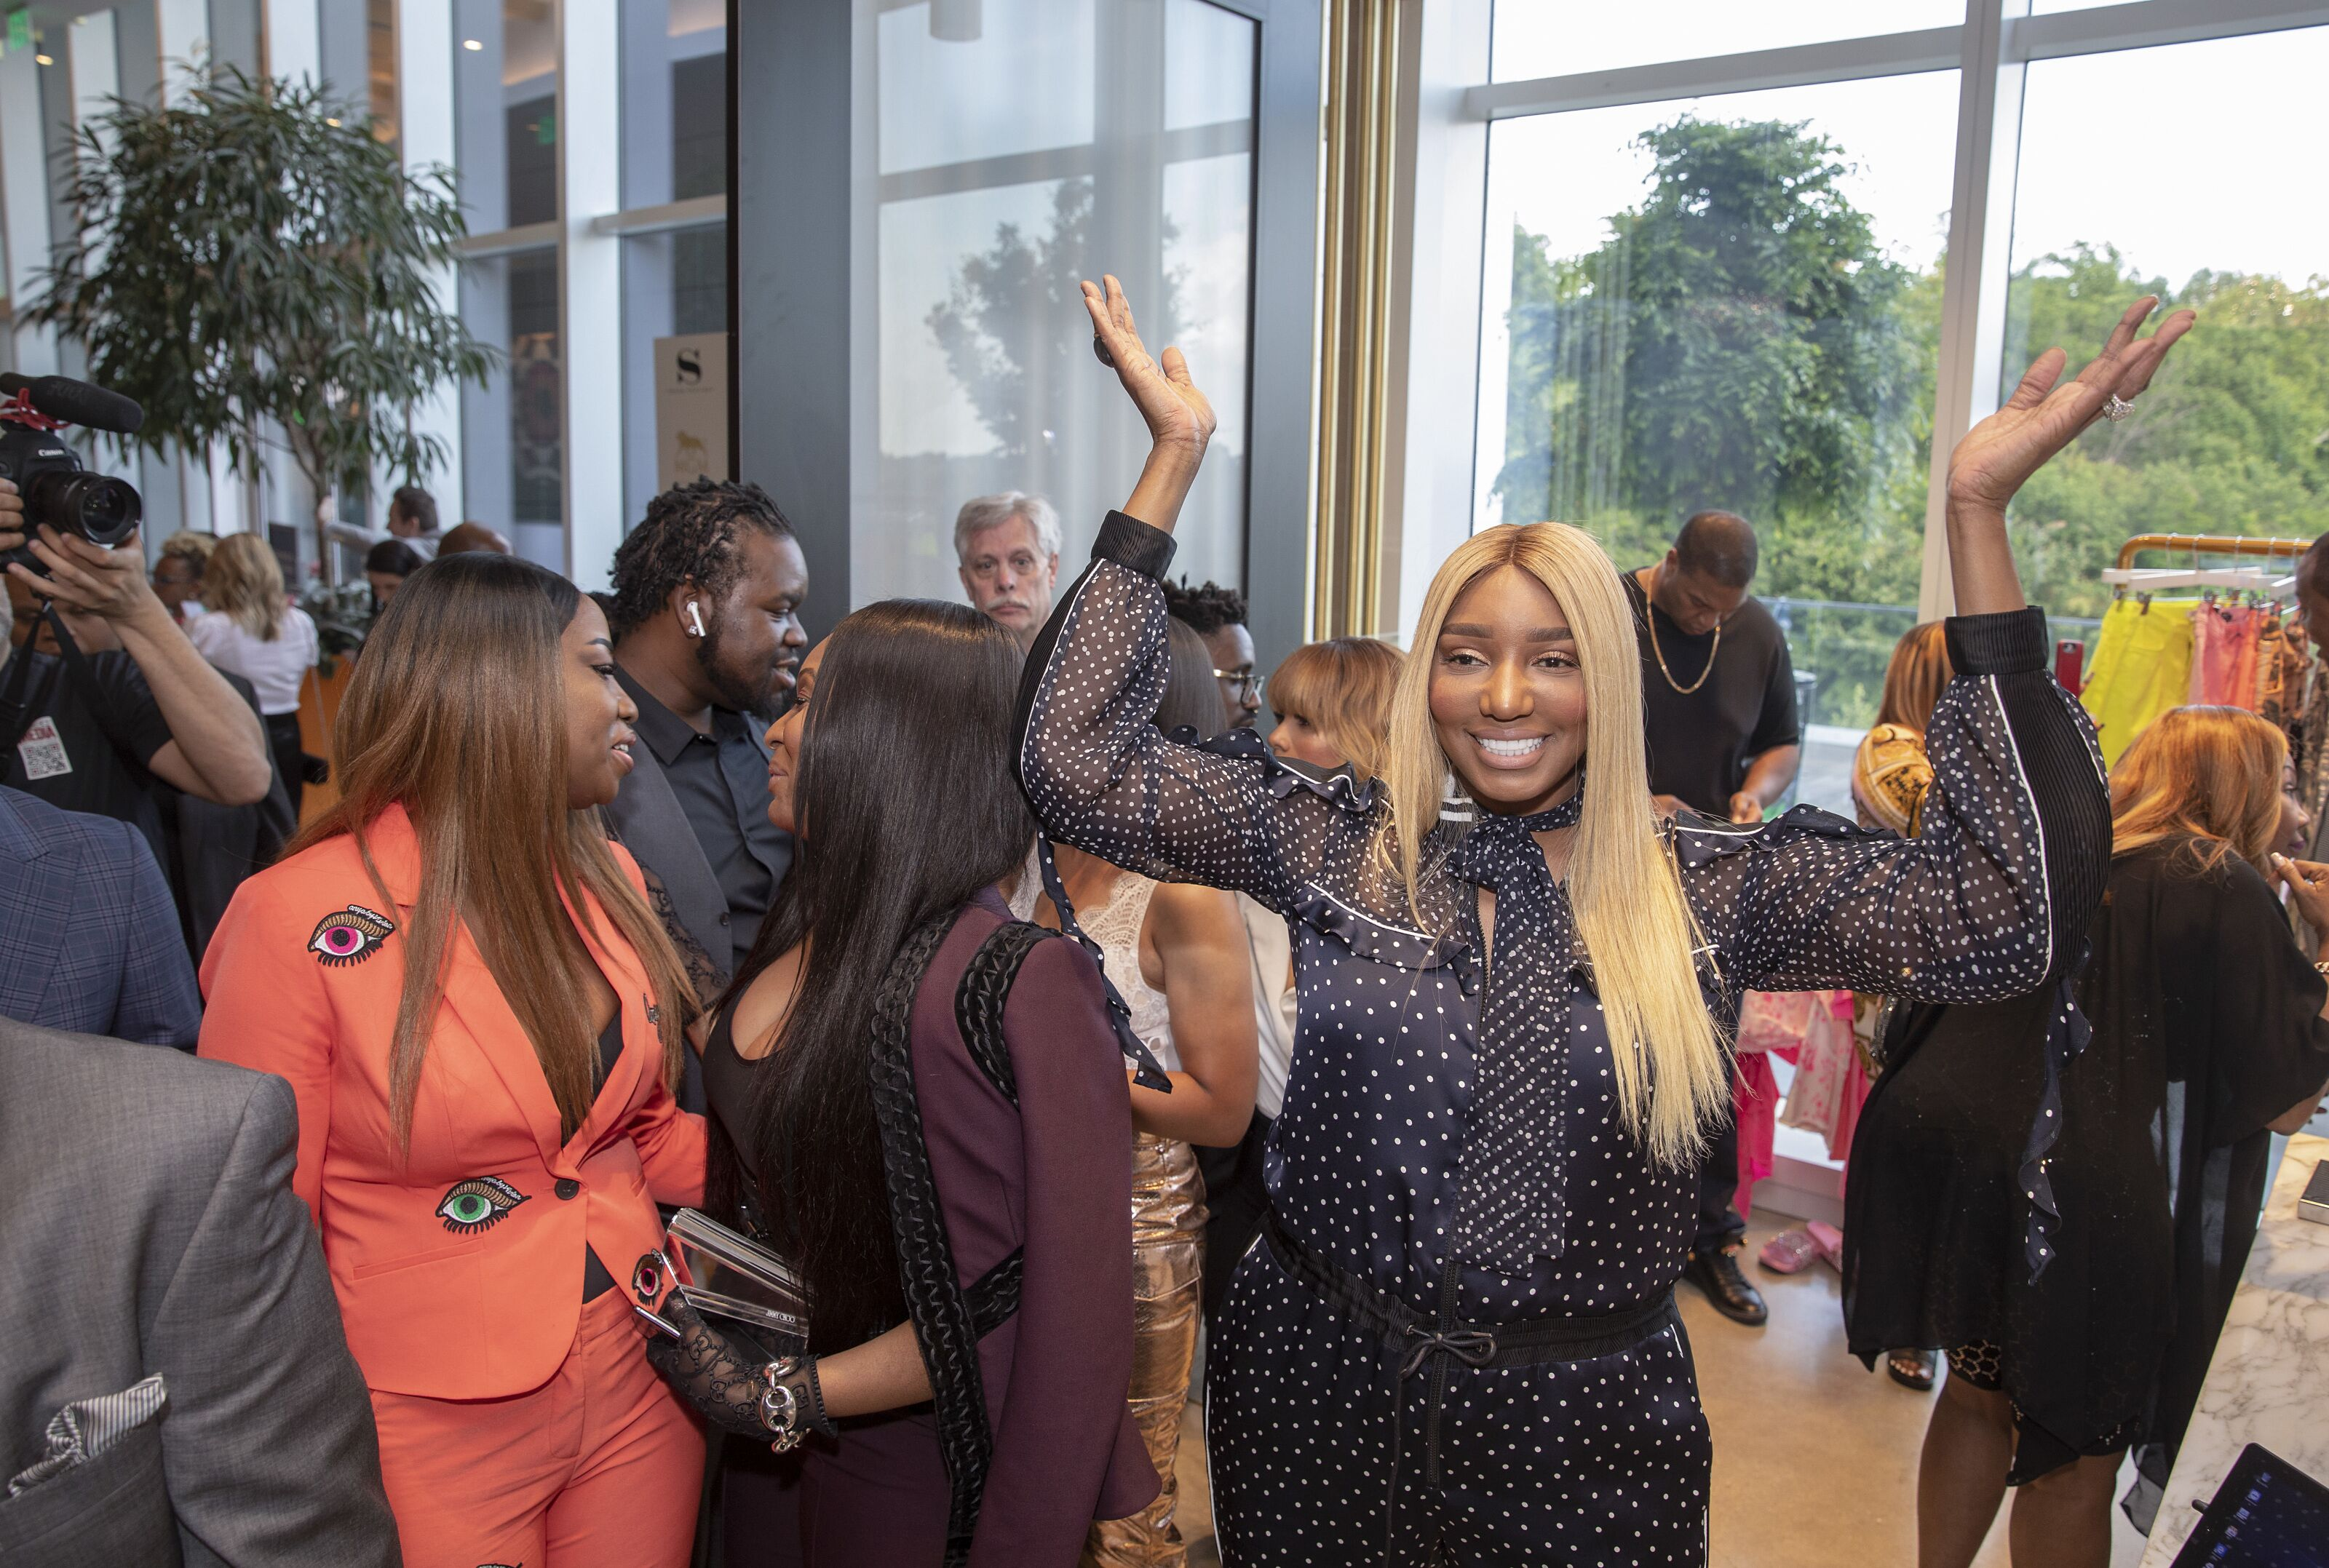 NeNe Leakes, Kim Zolciak team up: RHOA fans slam for 'thirst' for fame